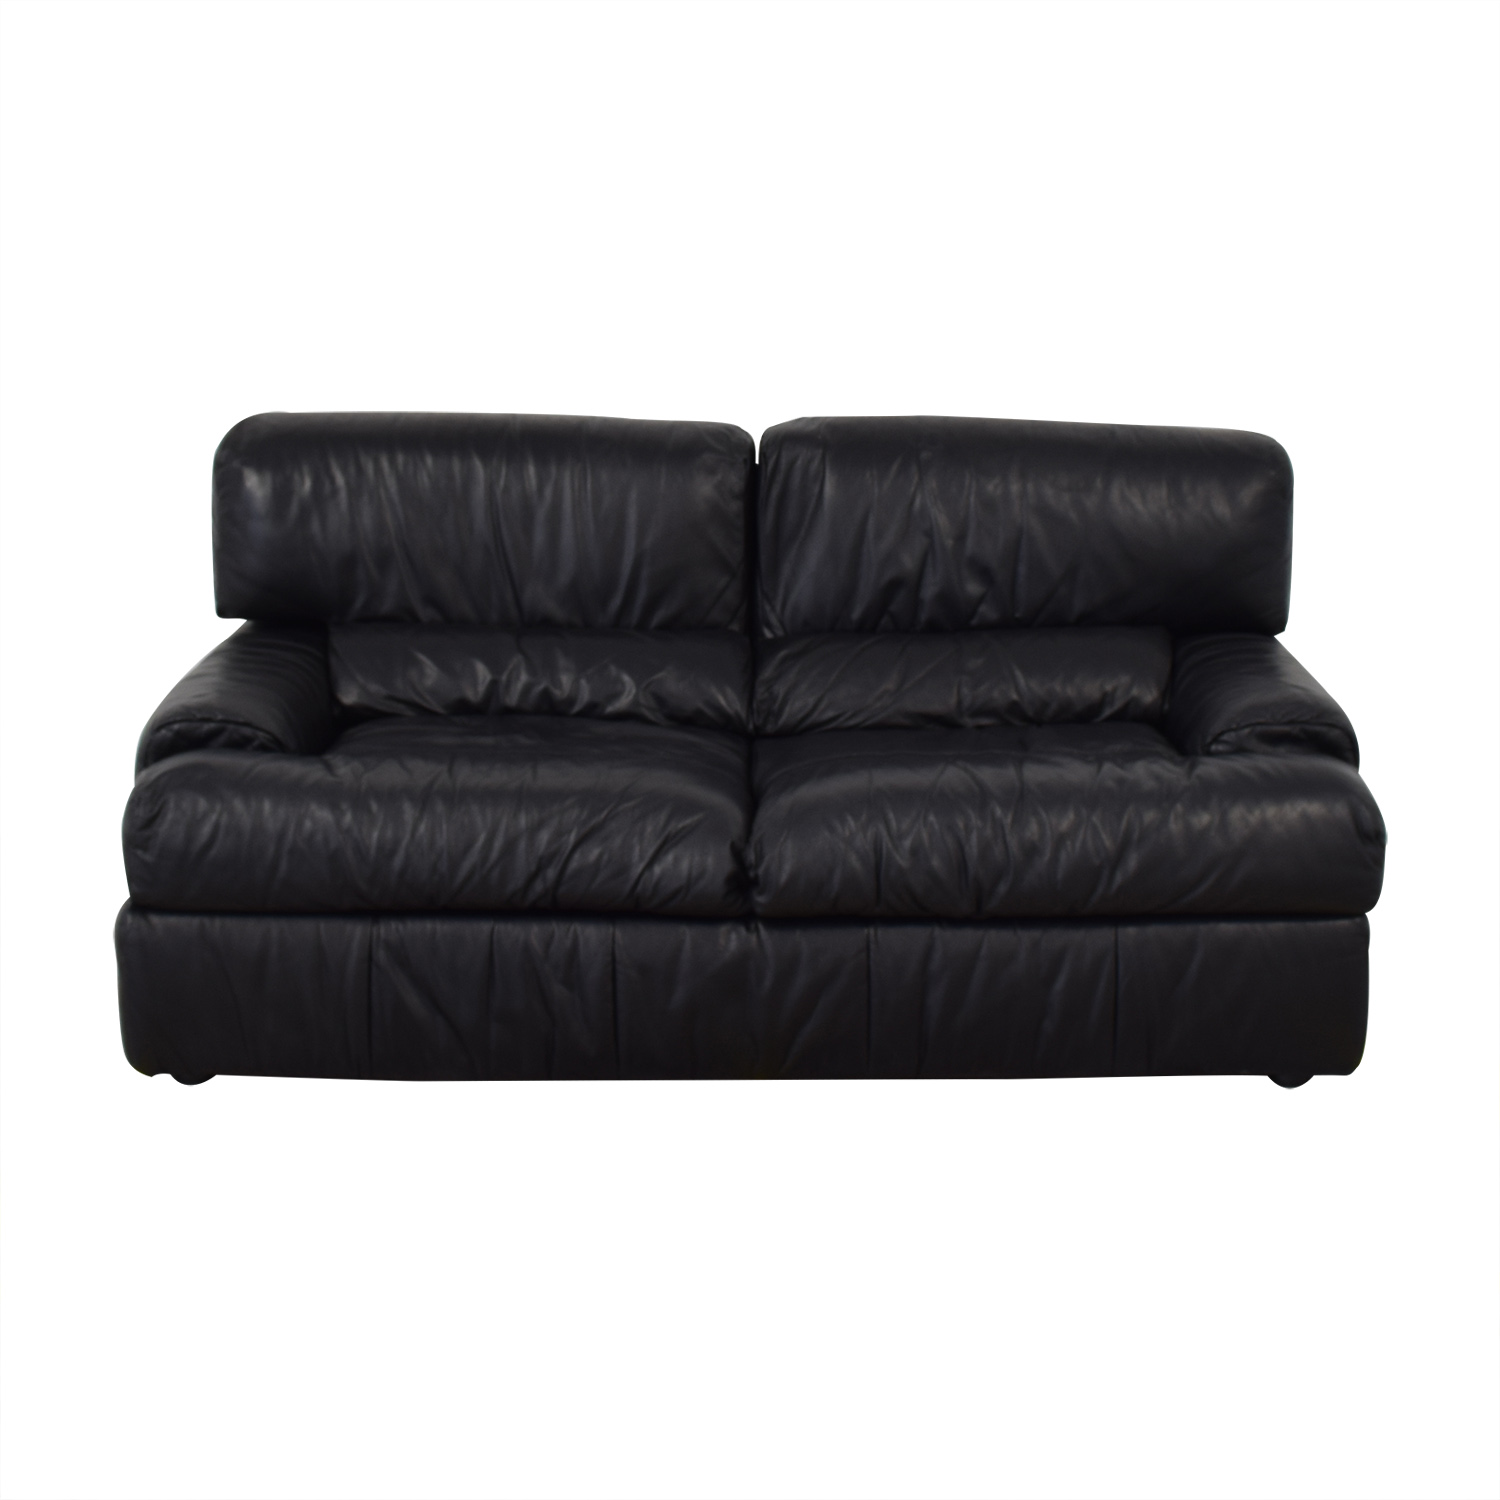 Natuzzi Natuzzi Black Leather Loveseat second hand